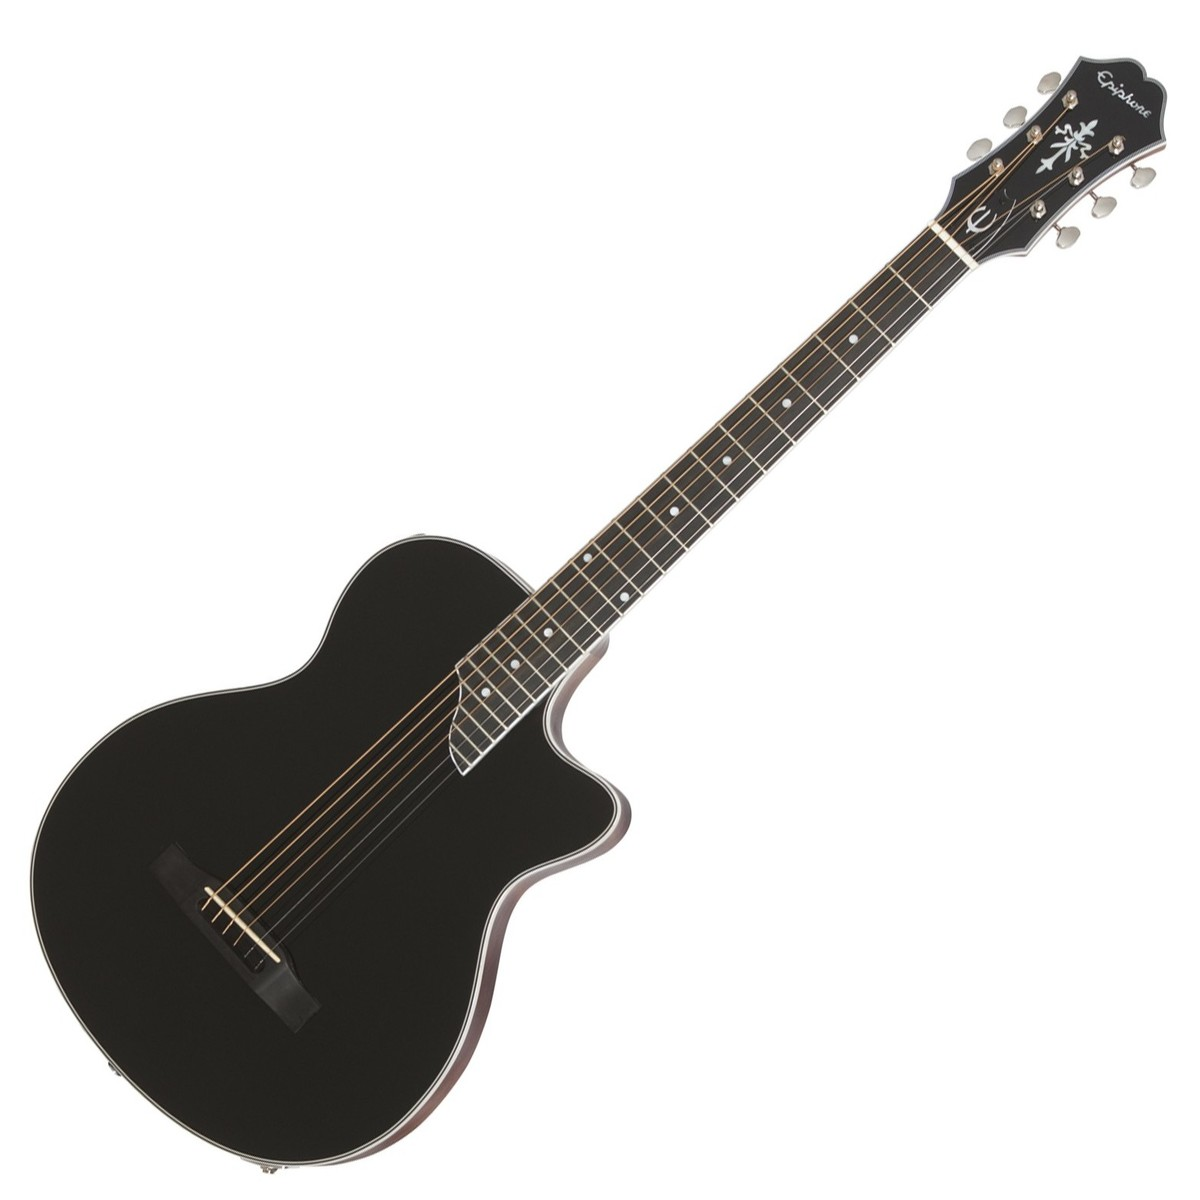 Epiphone Sst Wiring Diagram Will Be A Thing Auto Crane 3203 Prx Coupe Electro Acoustic Ebony Rh Gear4music Com Review String Height Adjustment